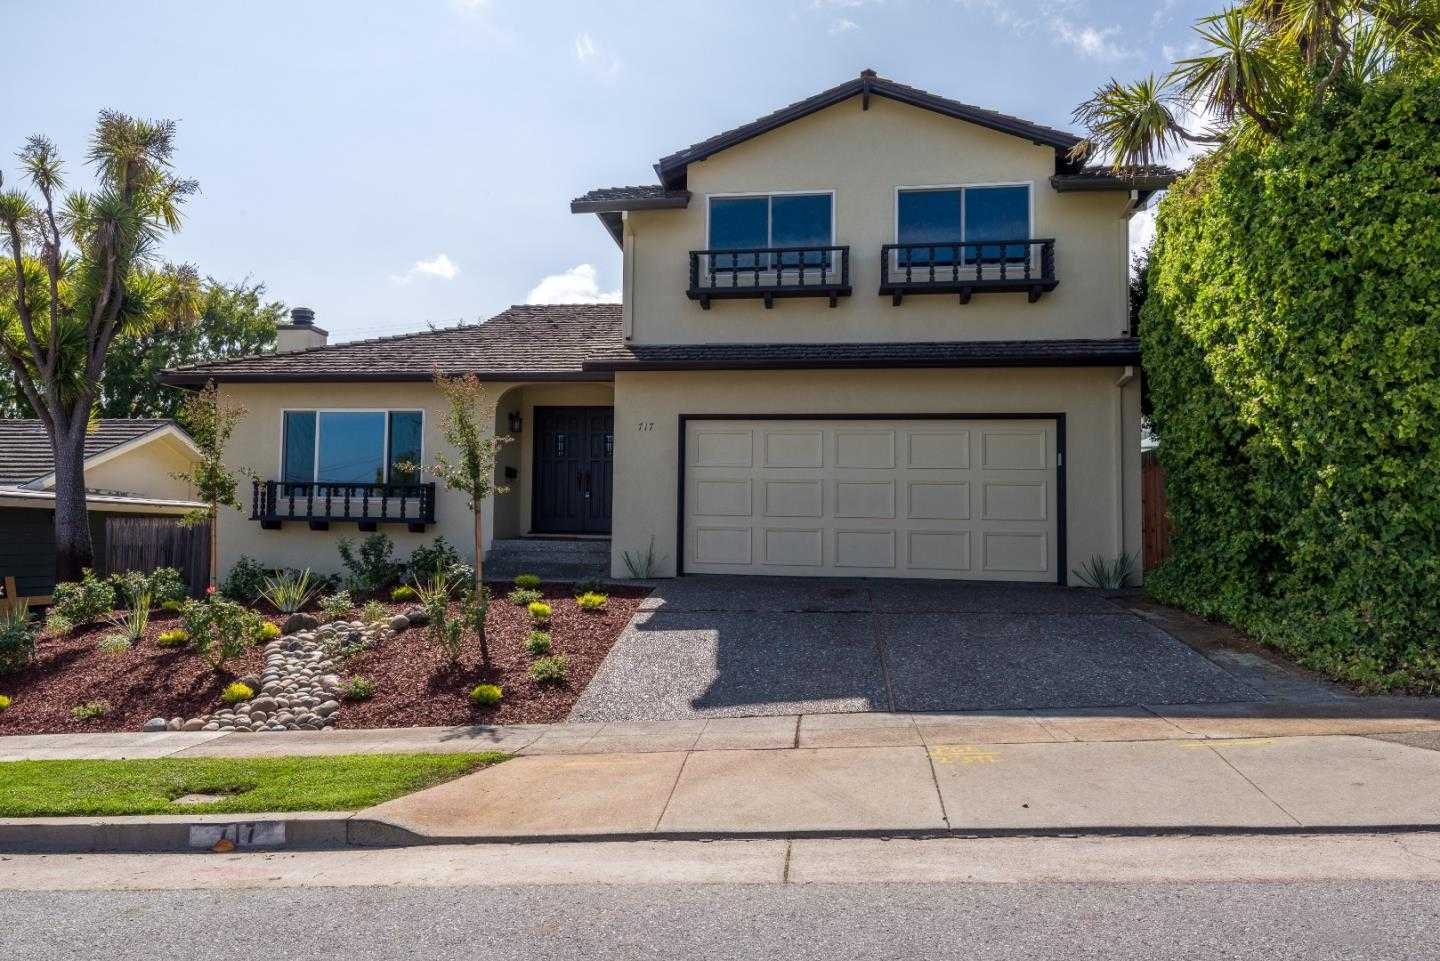 $1,878,000 - 3Br/3Ba -  for Sale in San Mateo